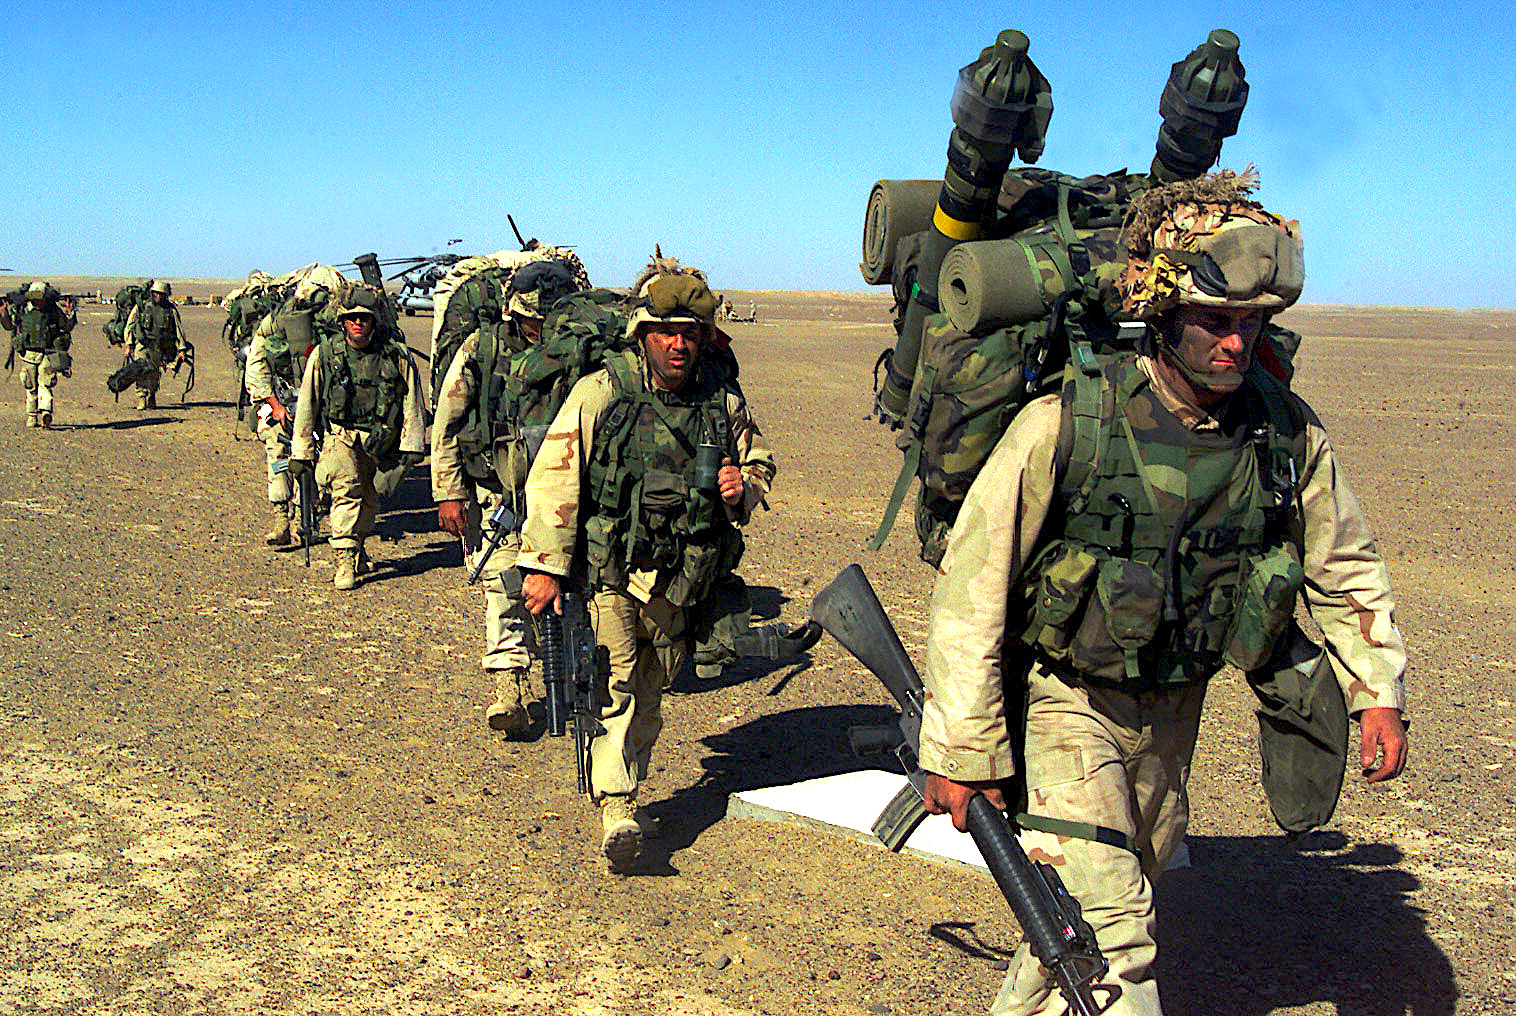 U.S. 15th Marine Expeditionary Unit after seizing a Taliban forward-operating base Nov. 25, 2001, shortly after U.S. invasion. (Sergeant Joseph R. Chenelly, U.S. Marine Corps)